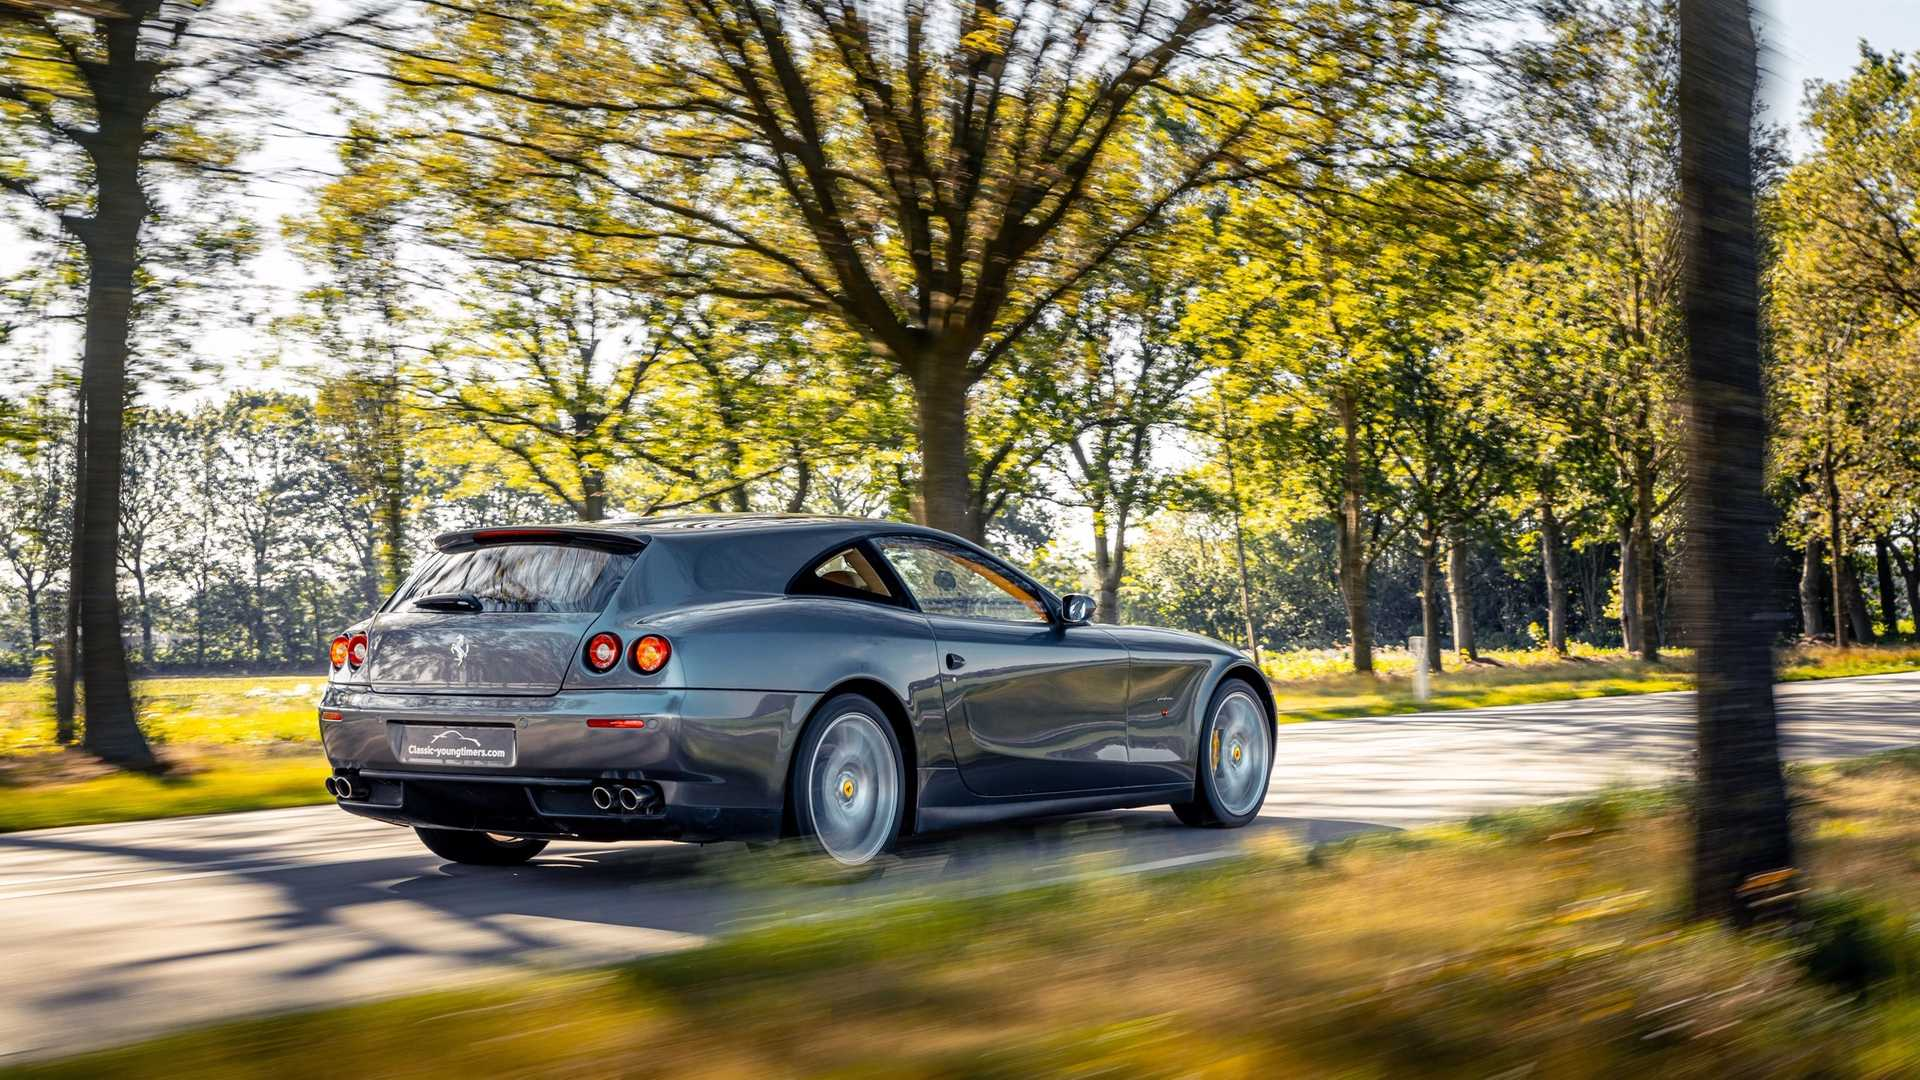 Ferrari-612-Scaglietti-Shooting-Brake-by-Vandenbrink-10